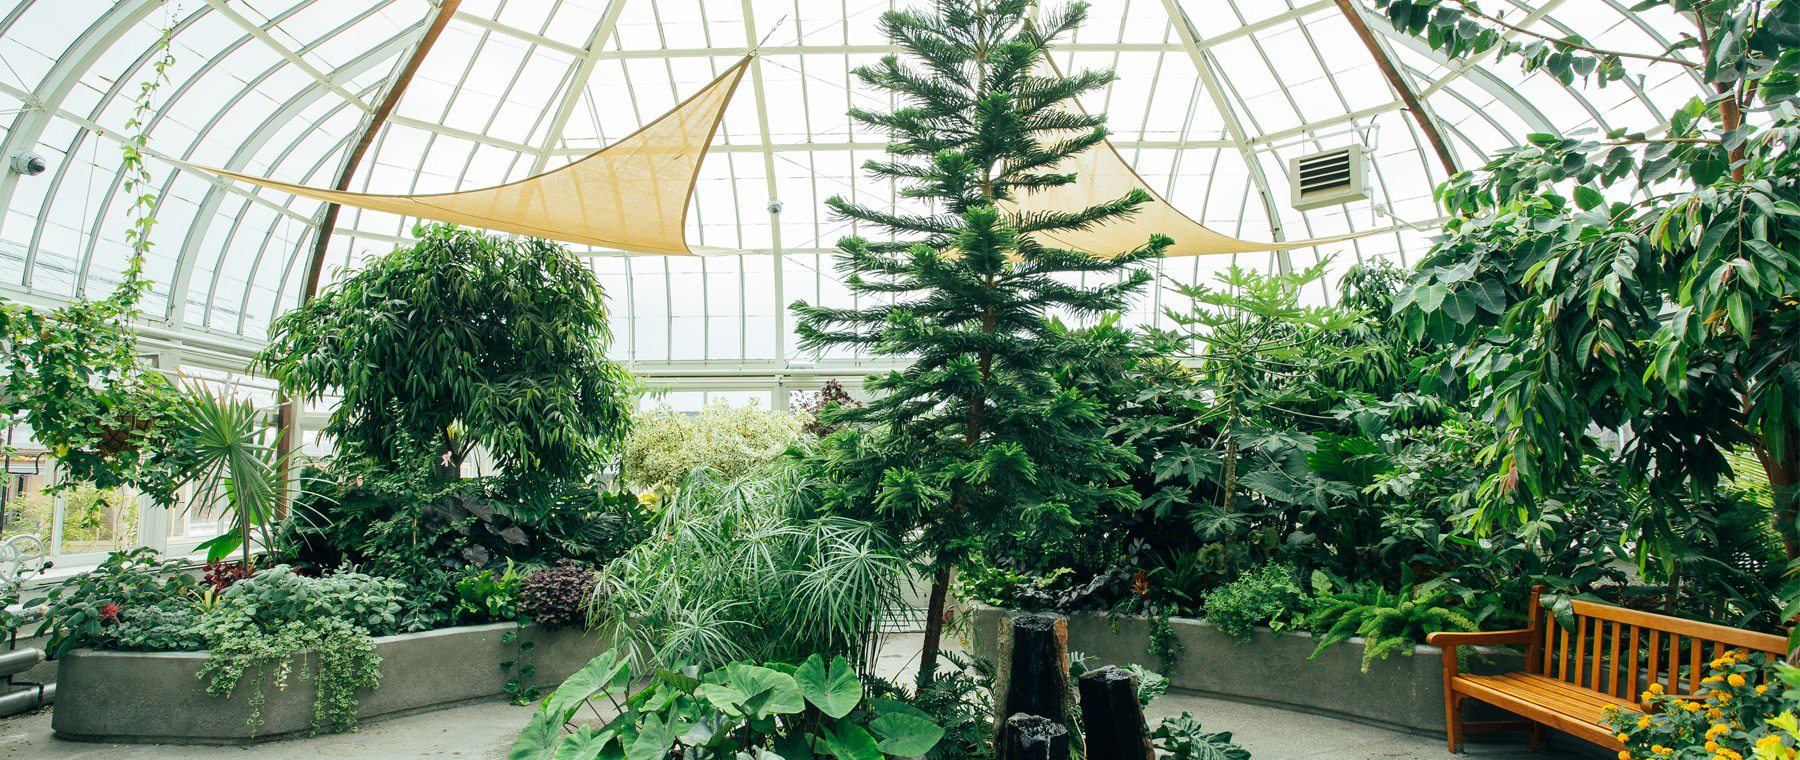 Need a tropical getaway? Soak up the sun inside a century-old conservatory